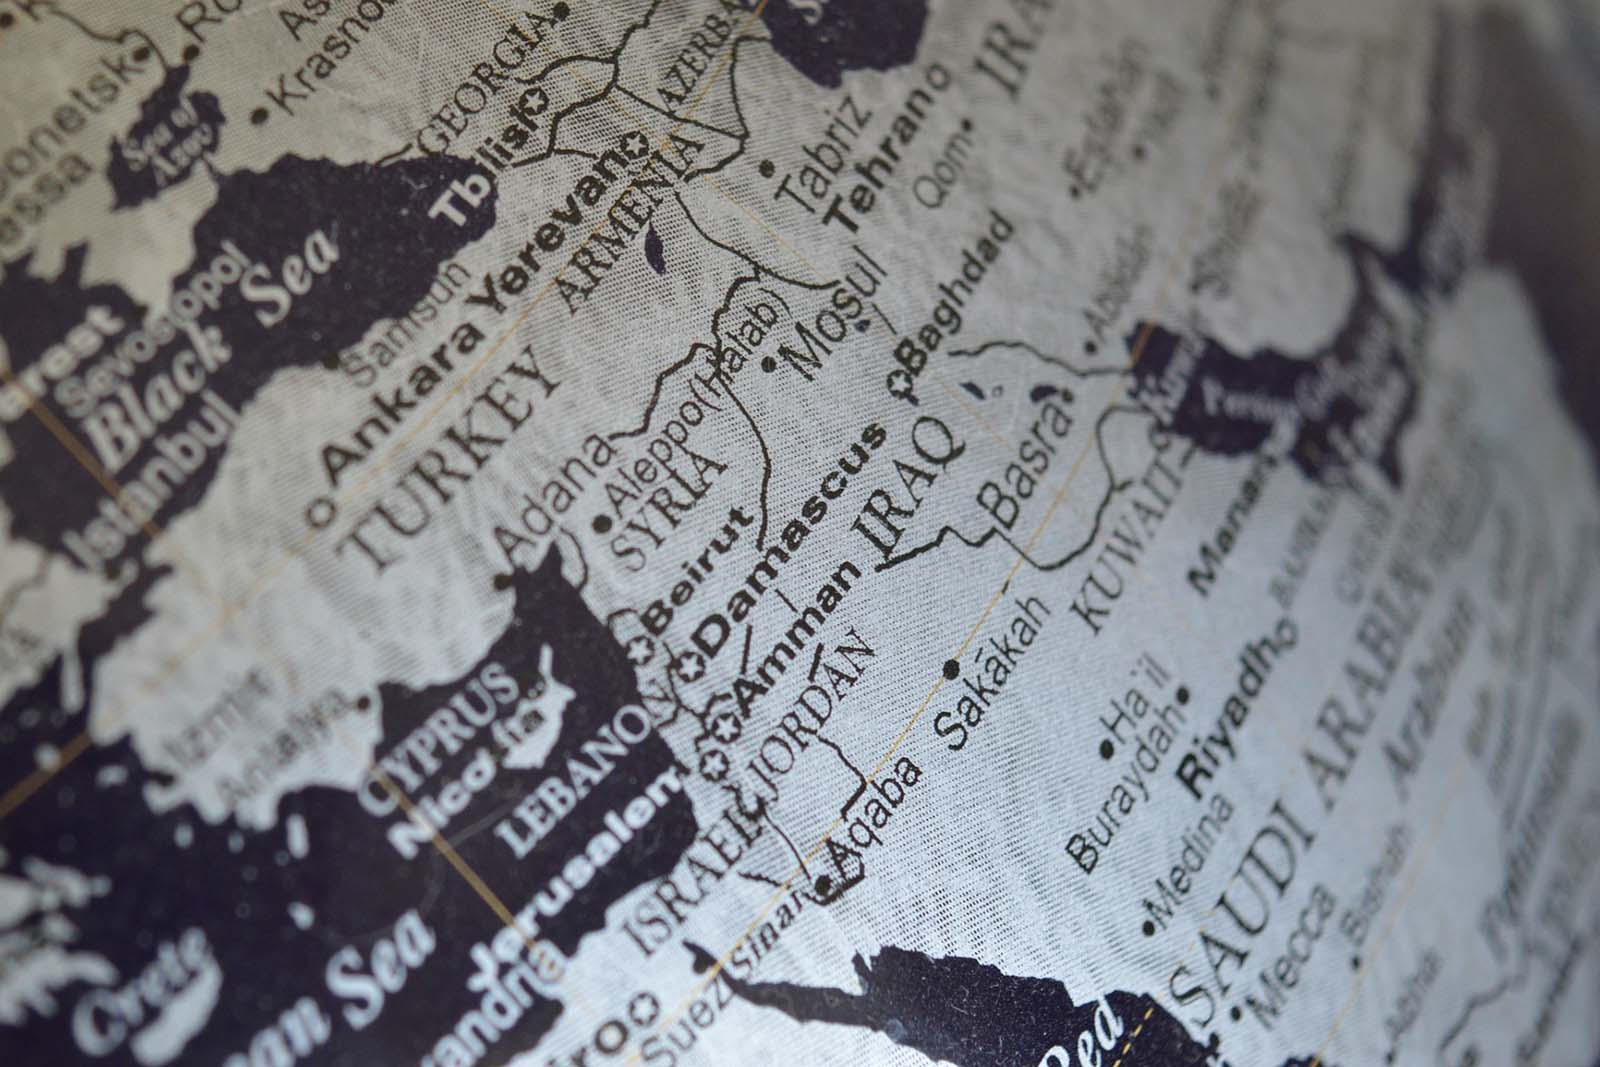 close-up on map of Syria and area